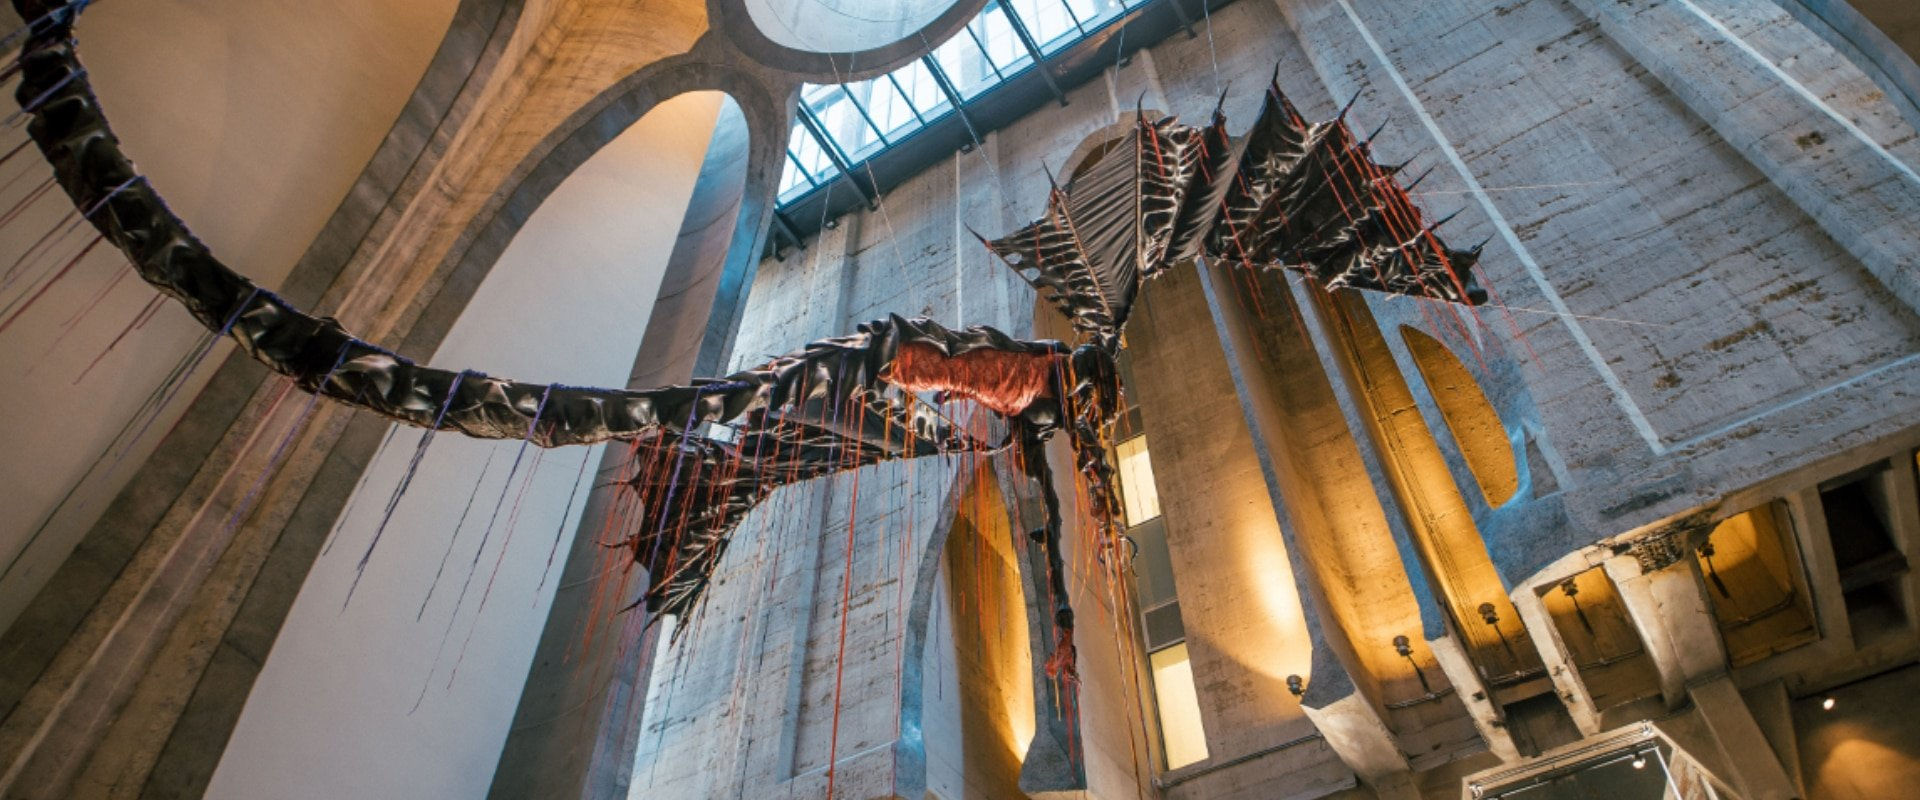 Dote on contemporary African art at Zeitz MOCAA museum